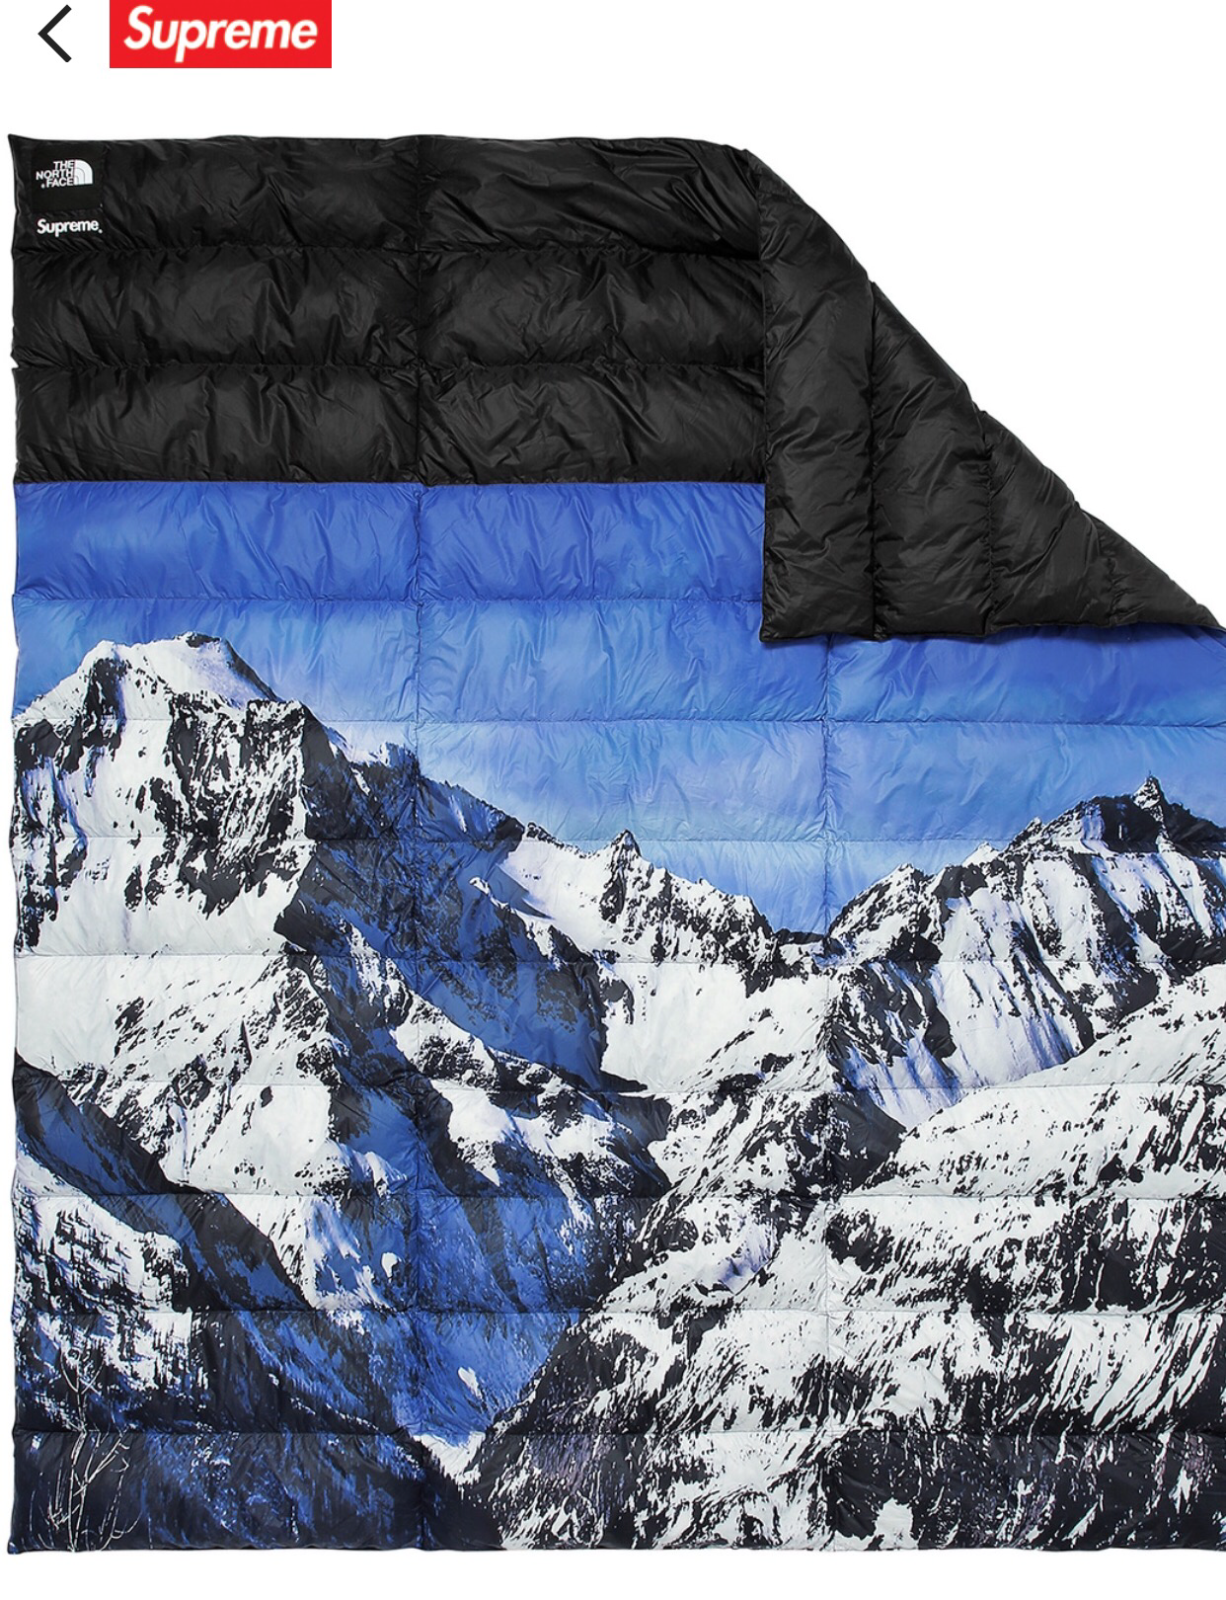 Supreme x The North Face Mountain nupste CouGrünure Neuf avec étiquettes